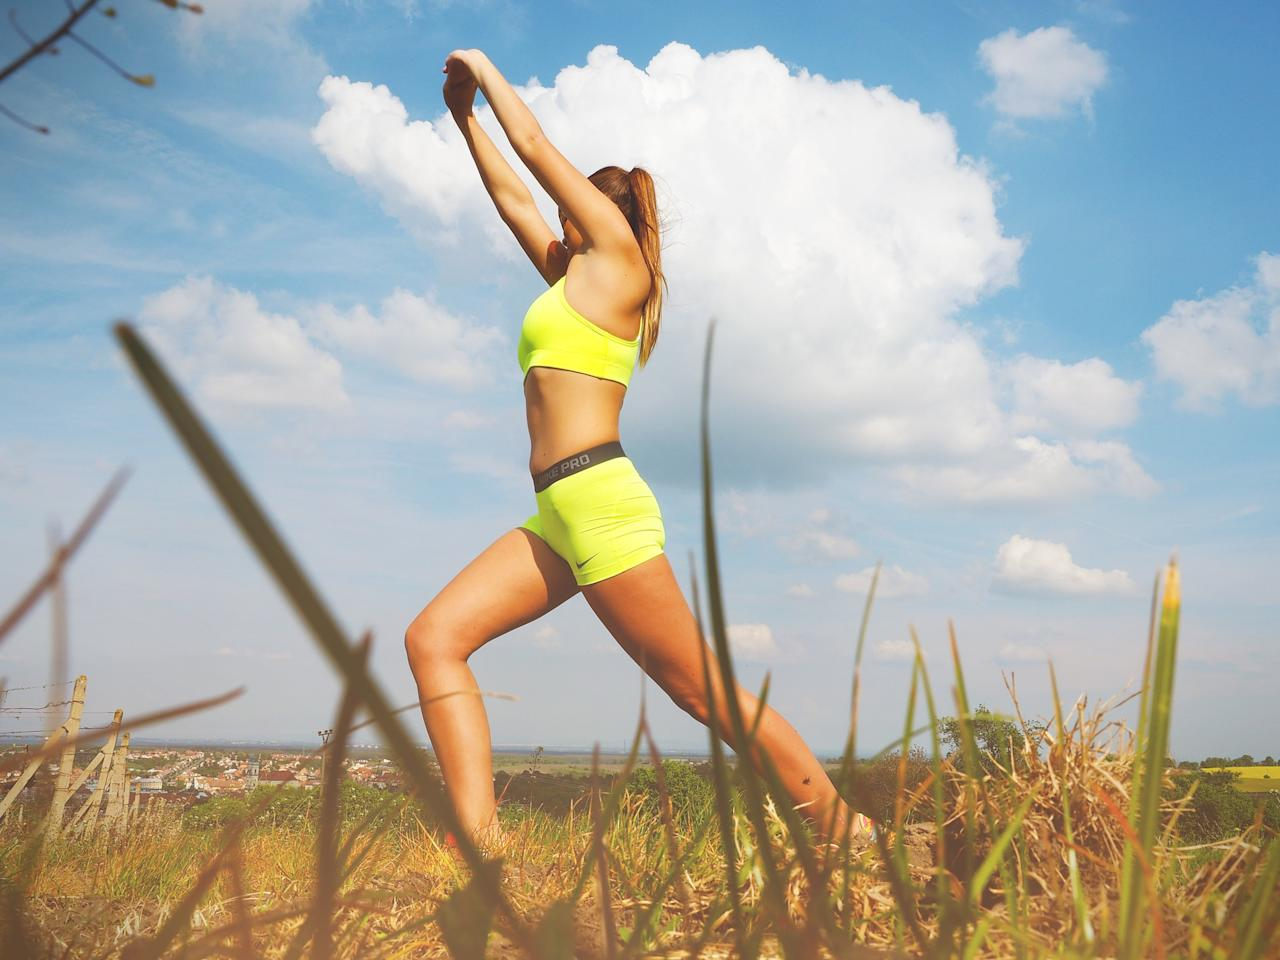 <p>Intense workout session can lead to muscle tear. It is extremely important to streatch before and after your workout to ease out your muscle pain and avoid further damage to your muscles. </p>